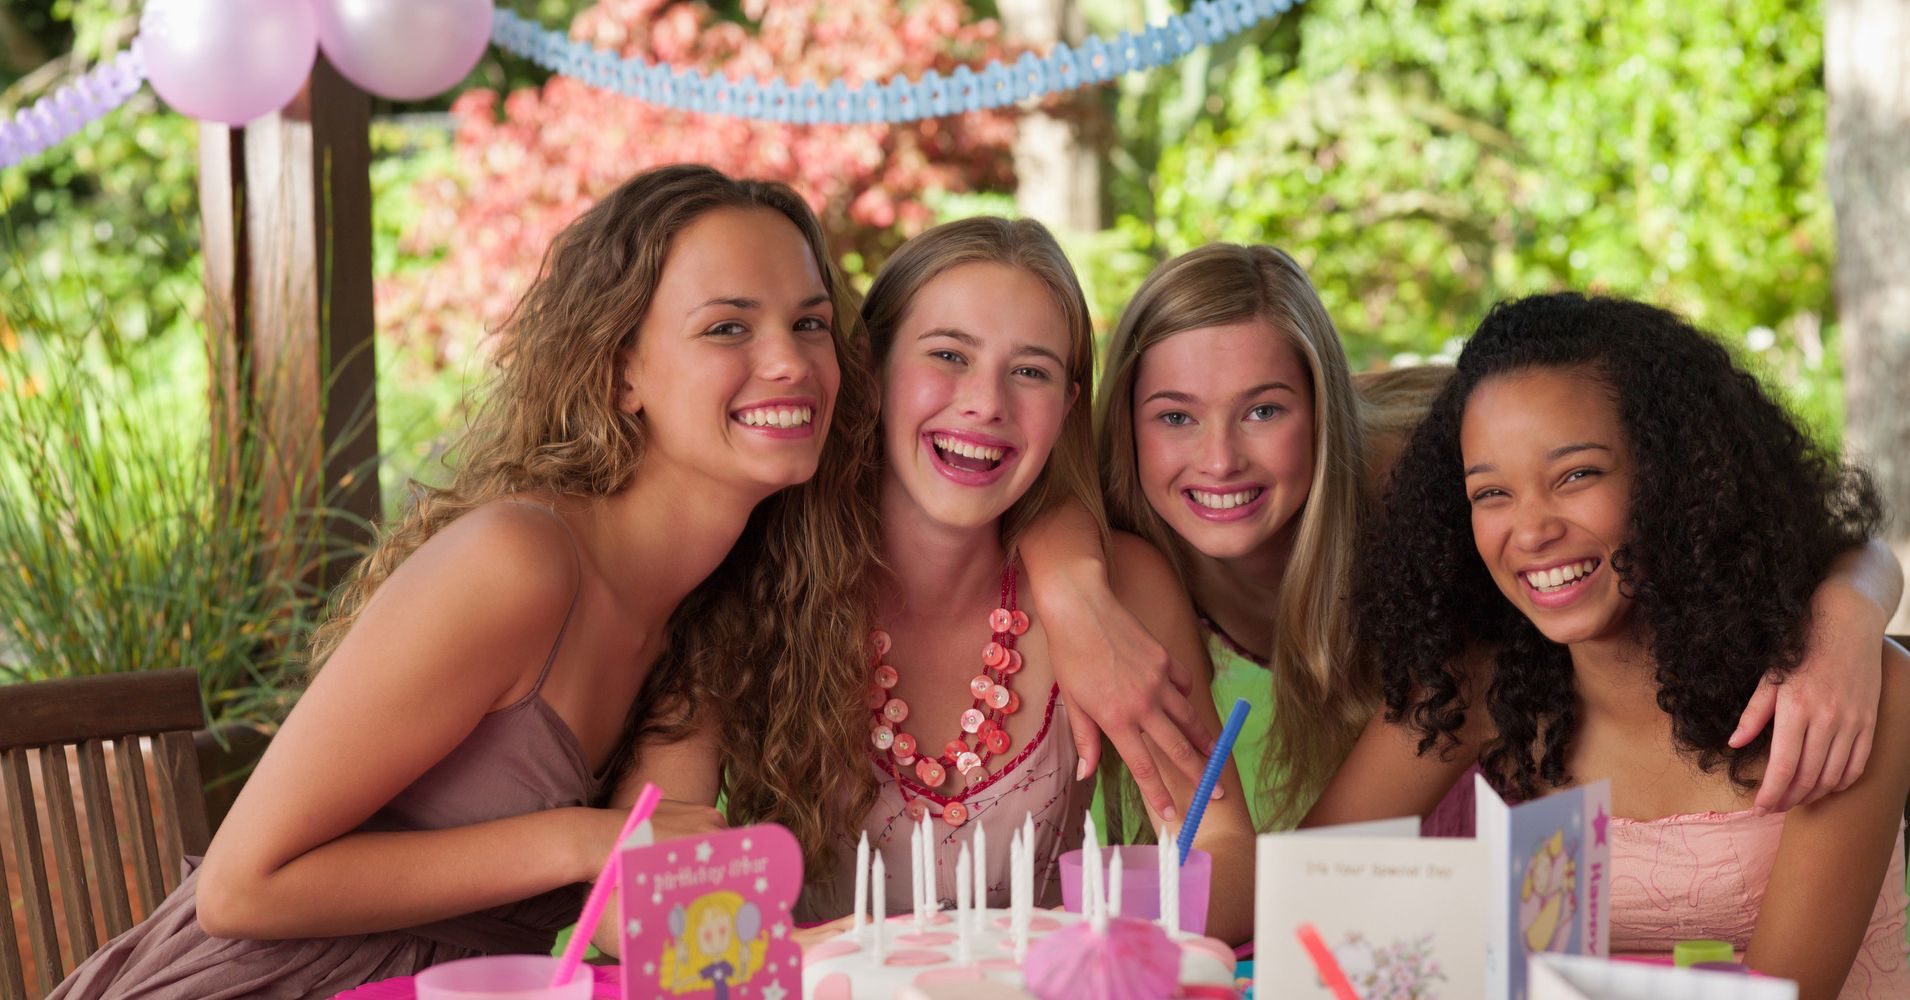 7 tips for planning the perfect surprise party for your